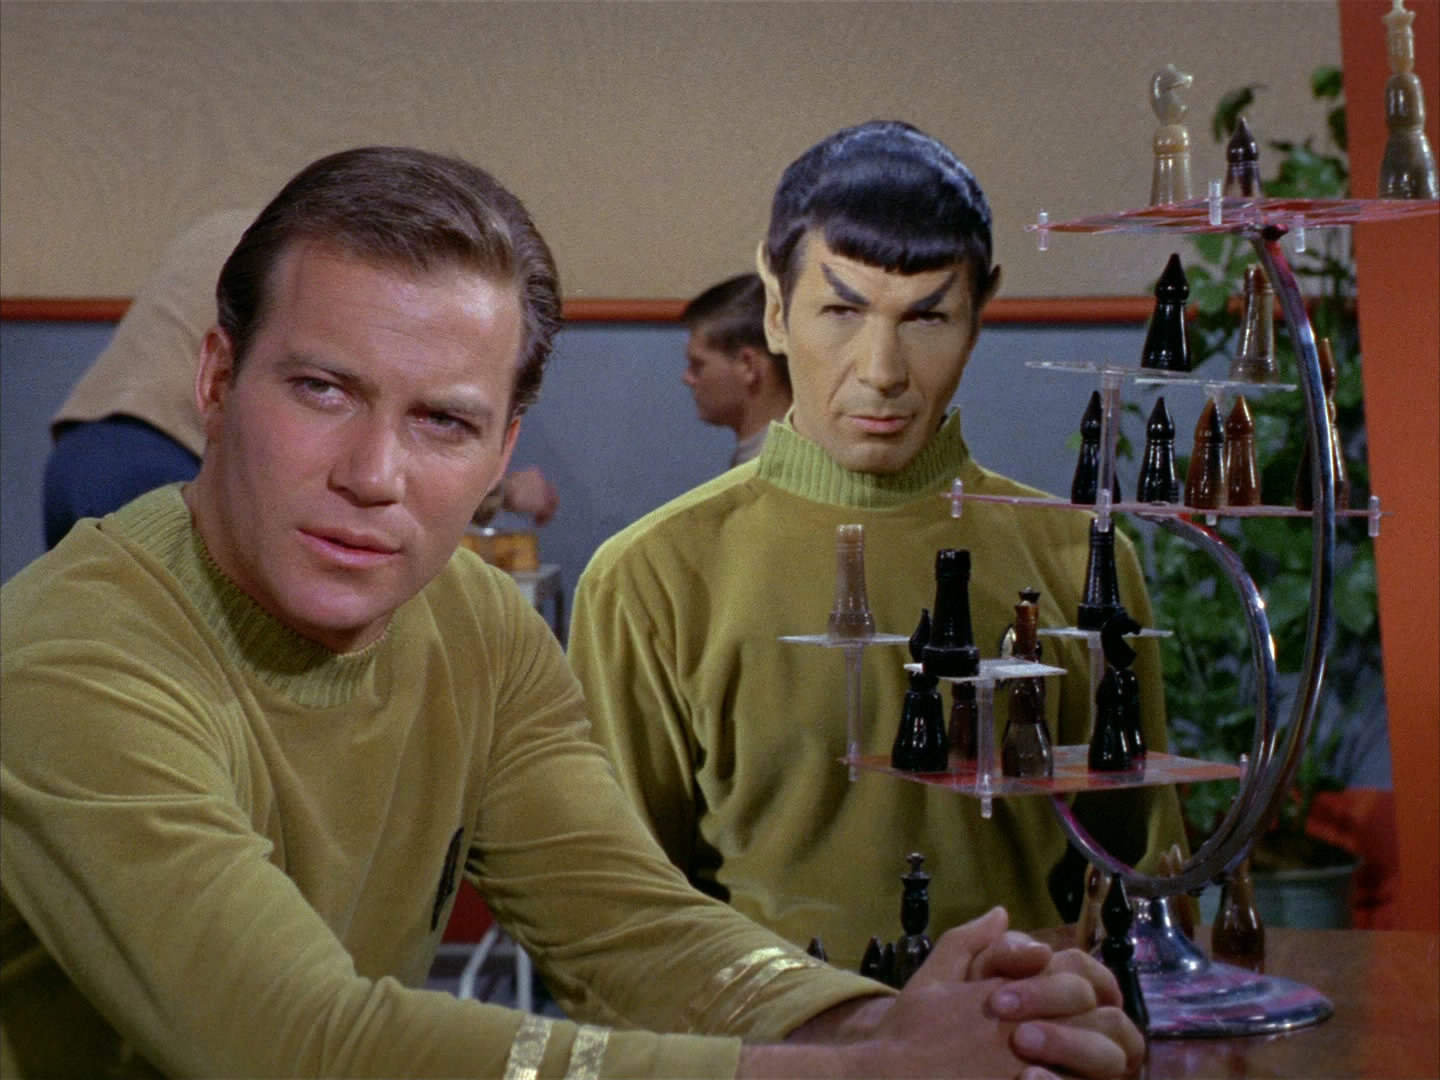 Spock administers the Tridimensional Personality Questionnaire